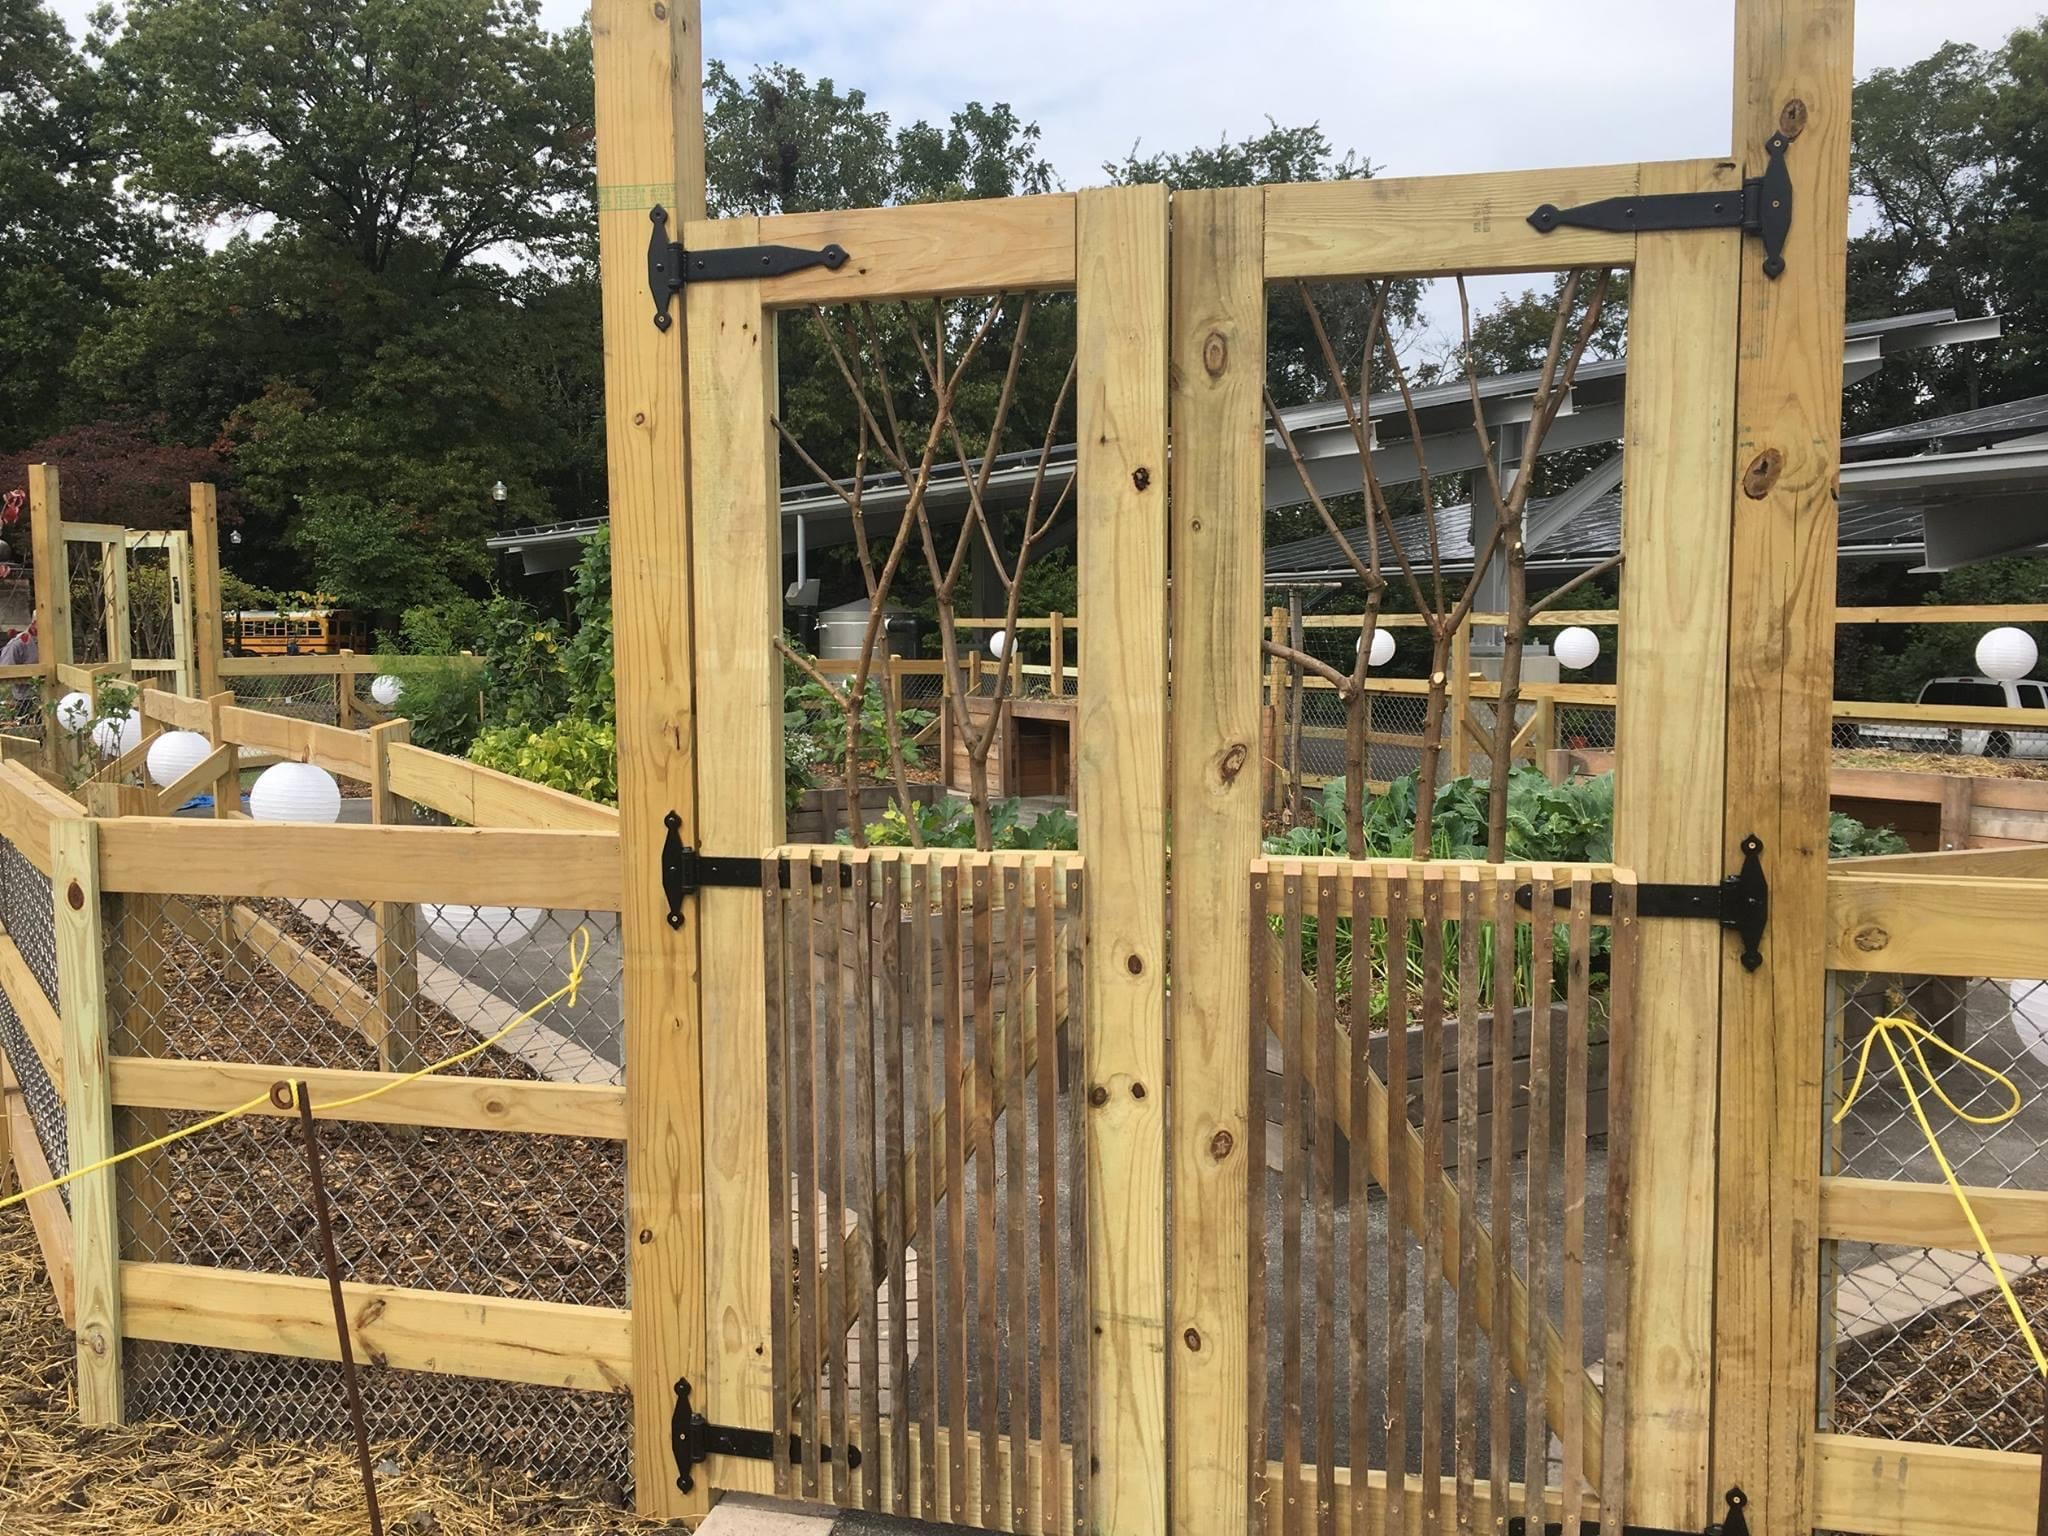 A wooden gate to the From Slavery to Freedom garden